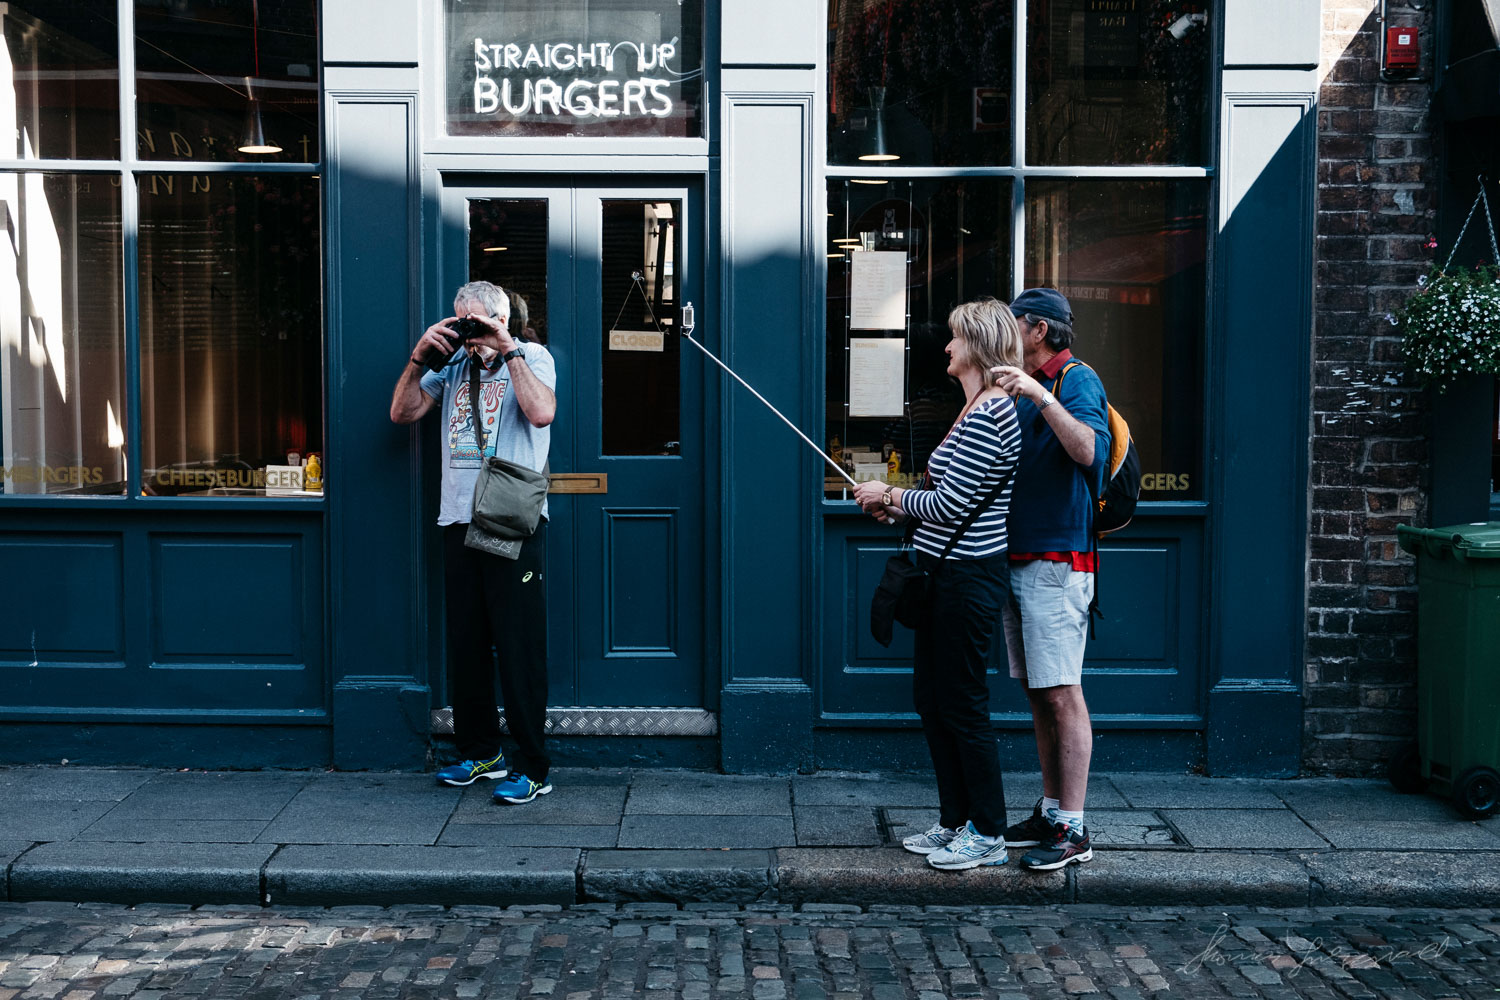 Dublin Street Photography August 2017Two years with the X-Pro 2